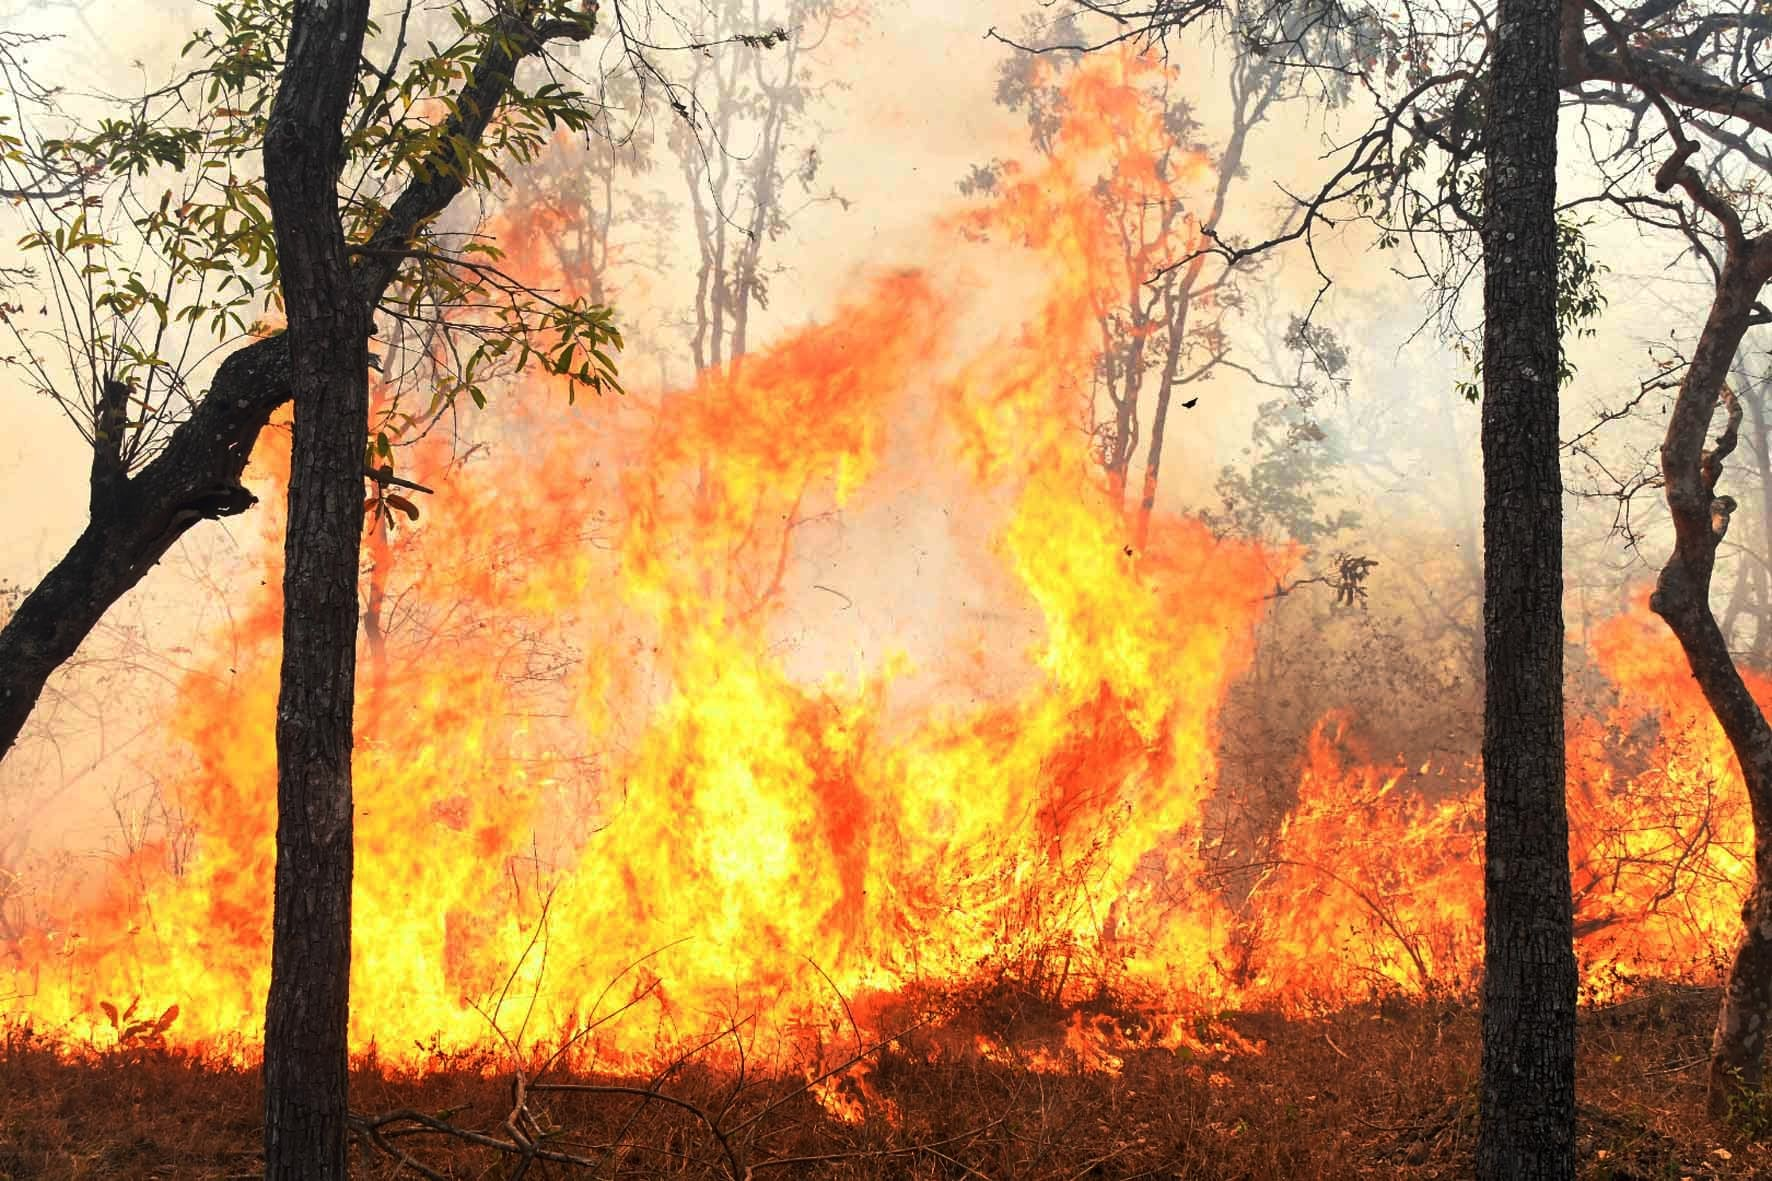 A stretch of eight kilometres of forest from Varekatte to Gopalaswamy Hill has been reduced to ashes while reports said the fire has spread to Chartalakore Hill, Dummana Hill and Gouri Kallu Hill. (Photo: IANS)